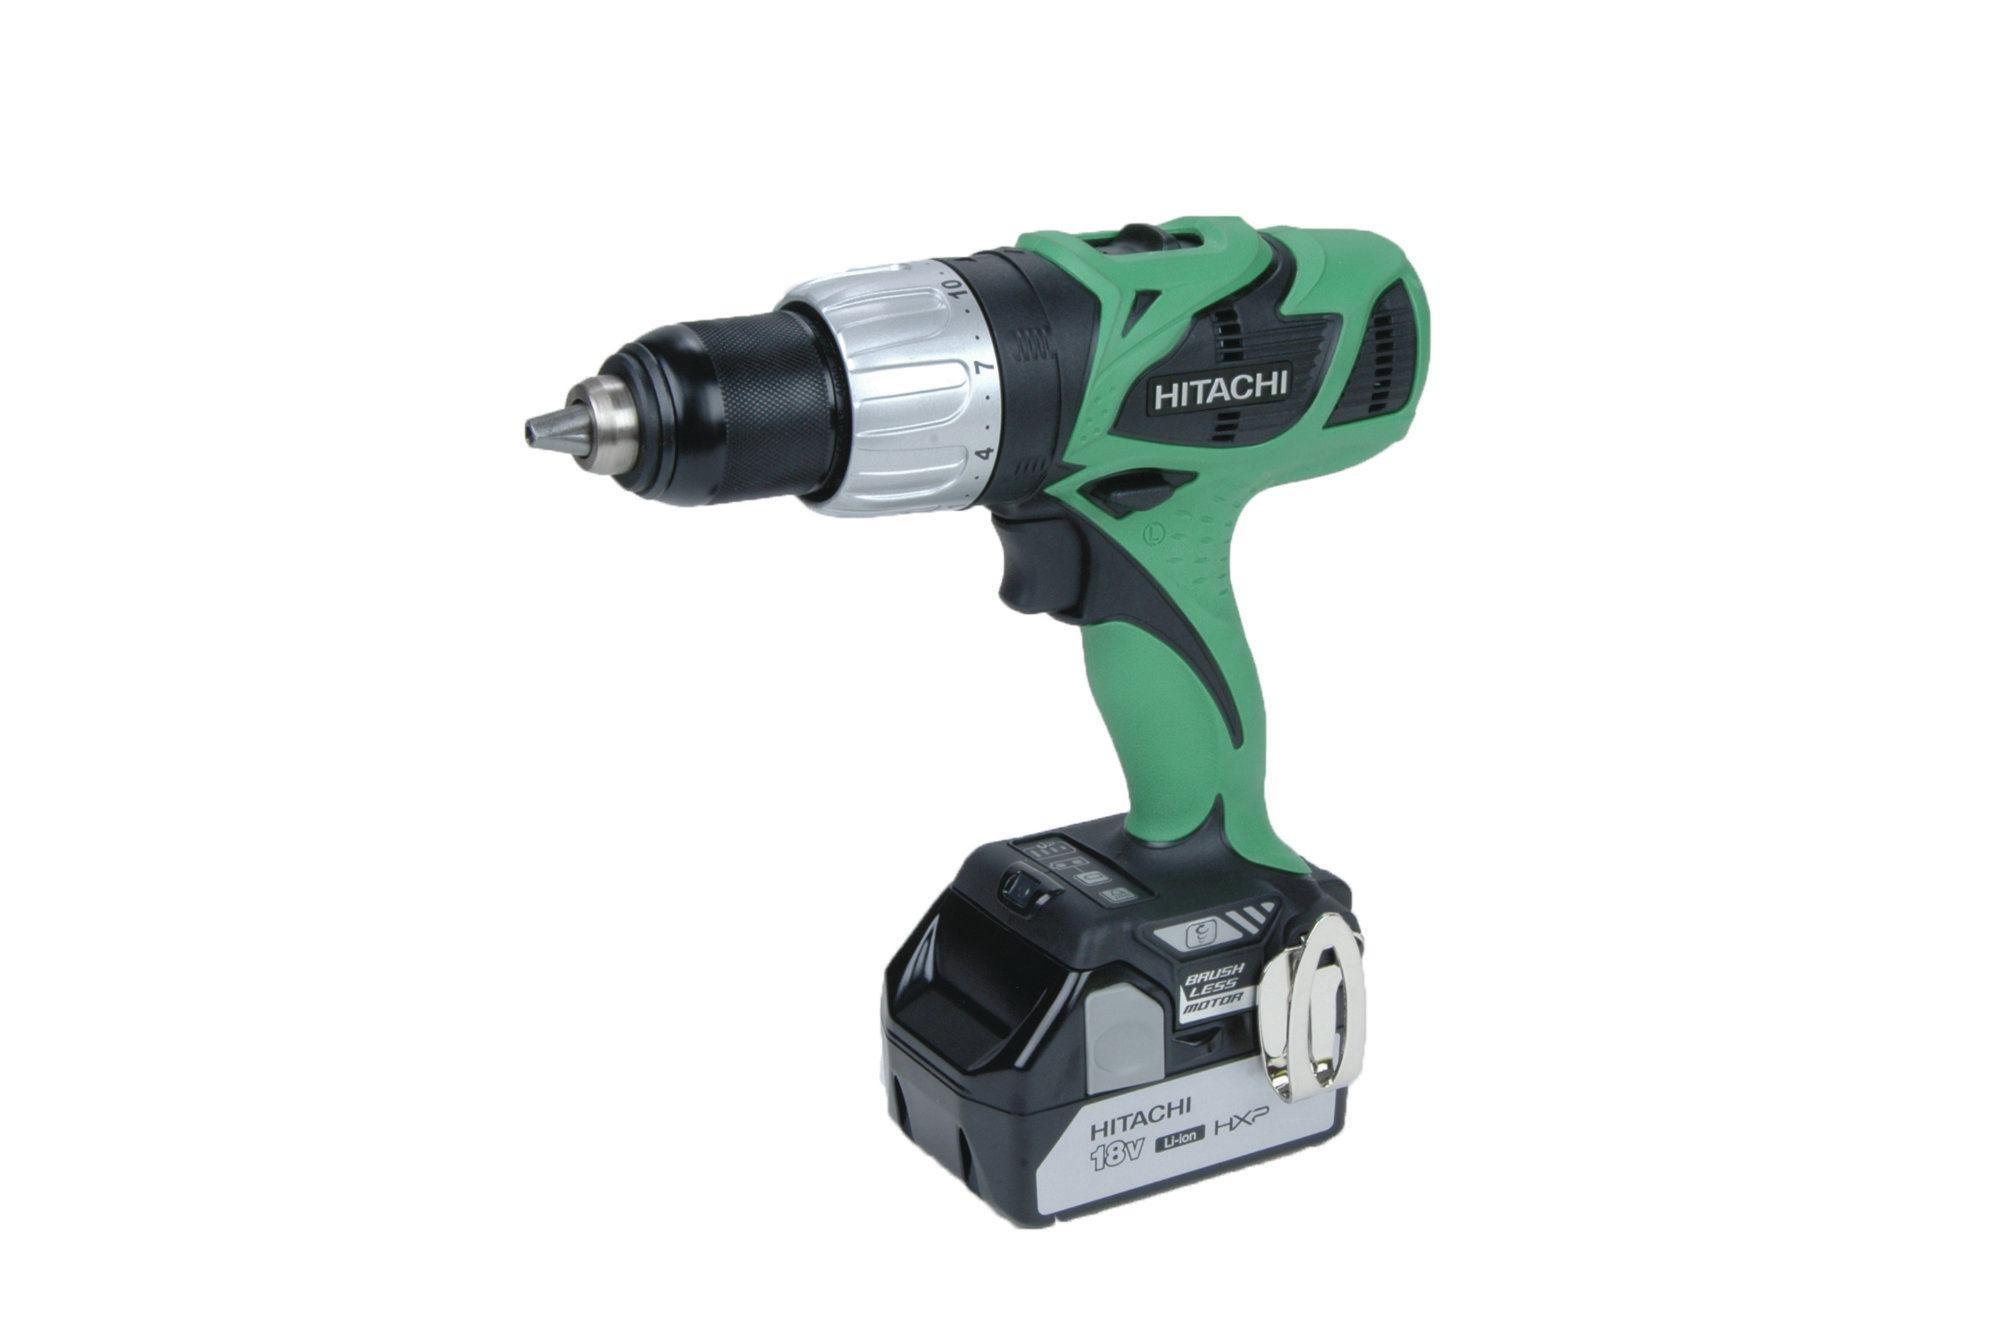 Hitachi Dv18dbl Hammer Drill Driver Review Tools Of The